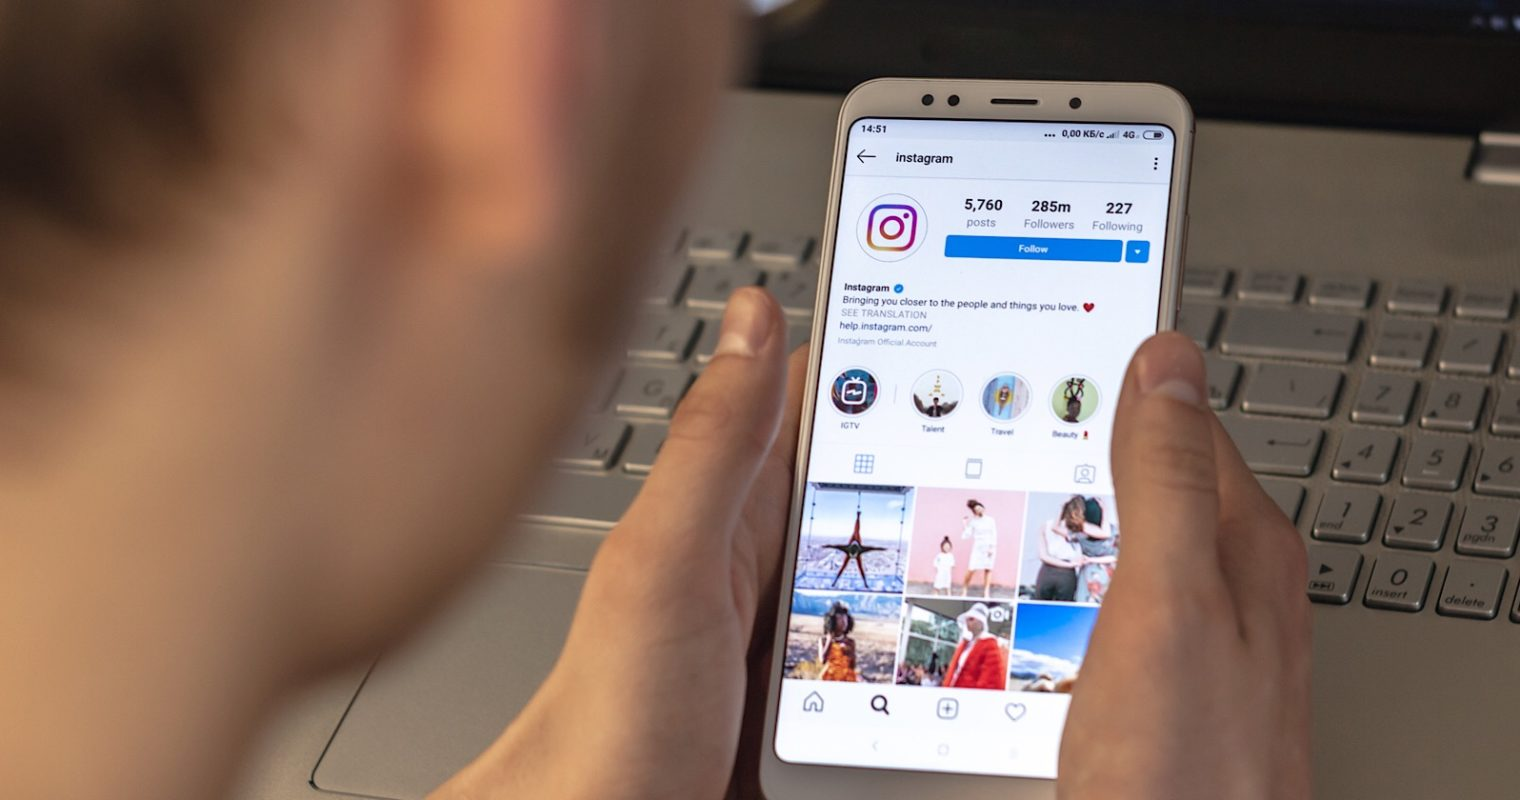 Instagram Posts Can Now Be Scheduled in Advance Through Facebook